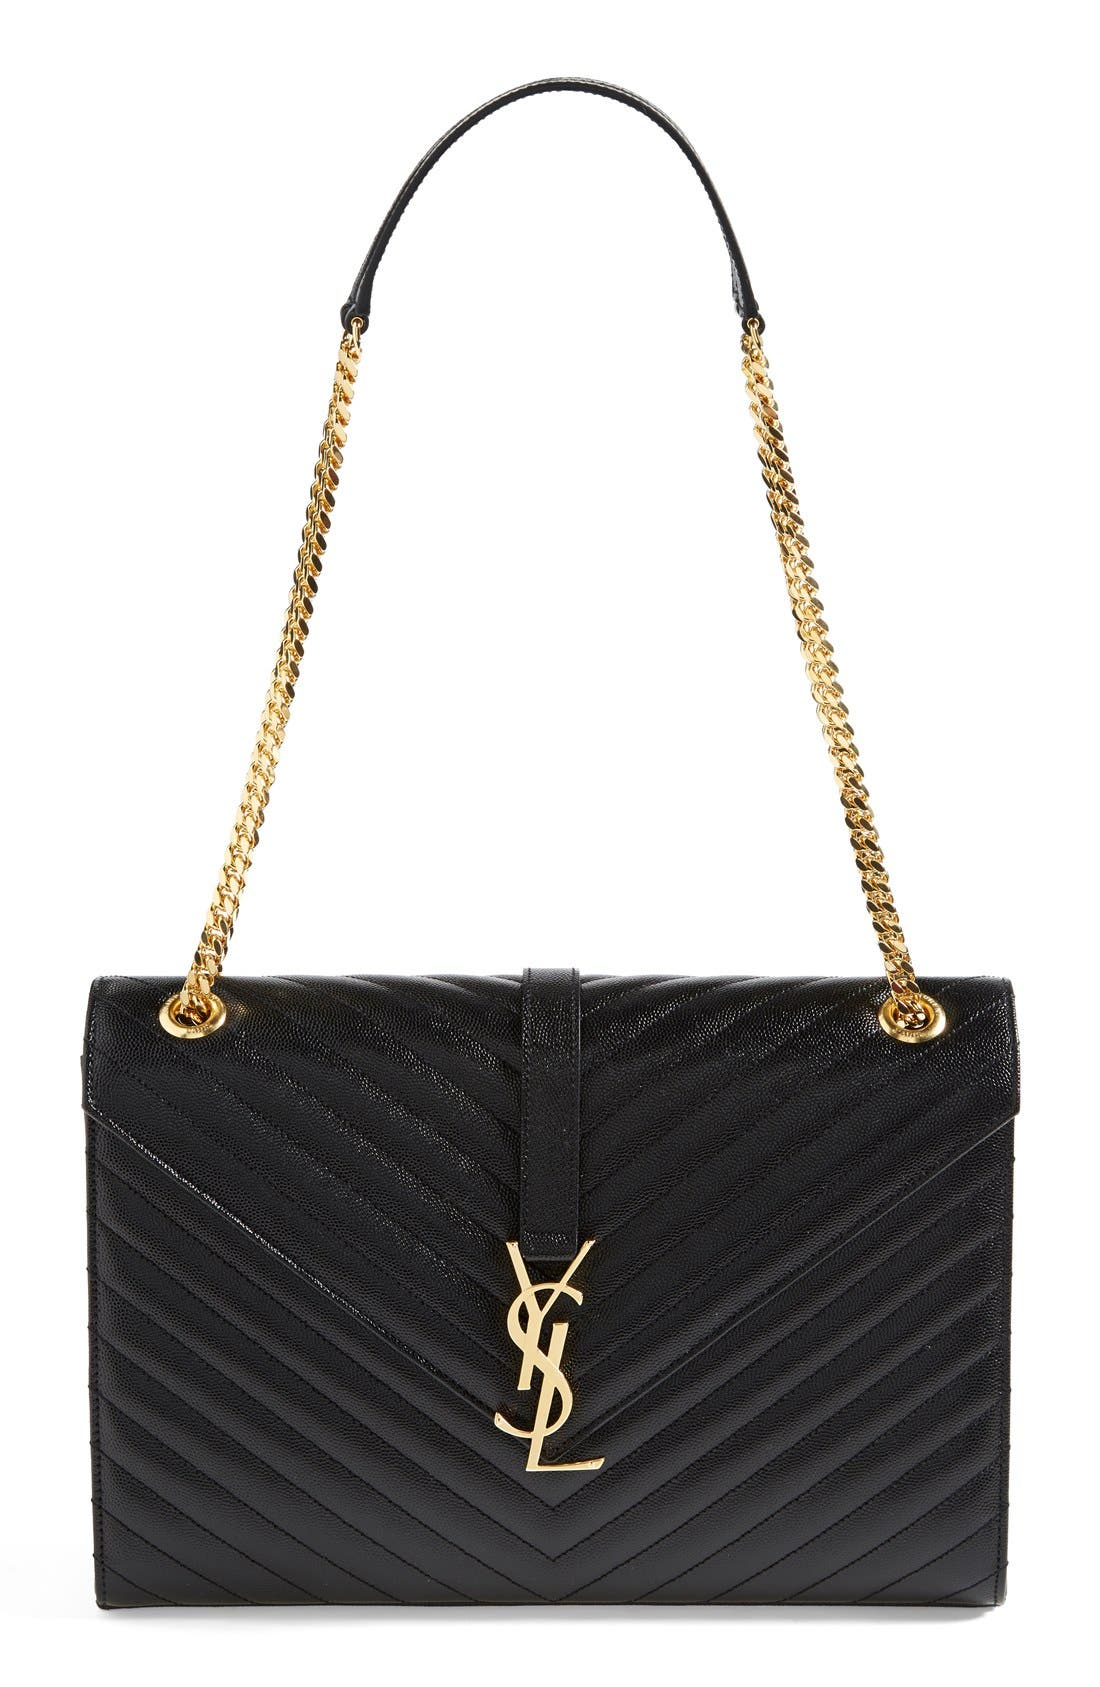 Main Image - Saint Laurent 'Monogram' Leather Shoulder Bag